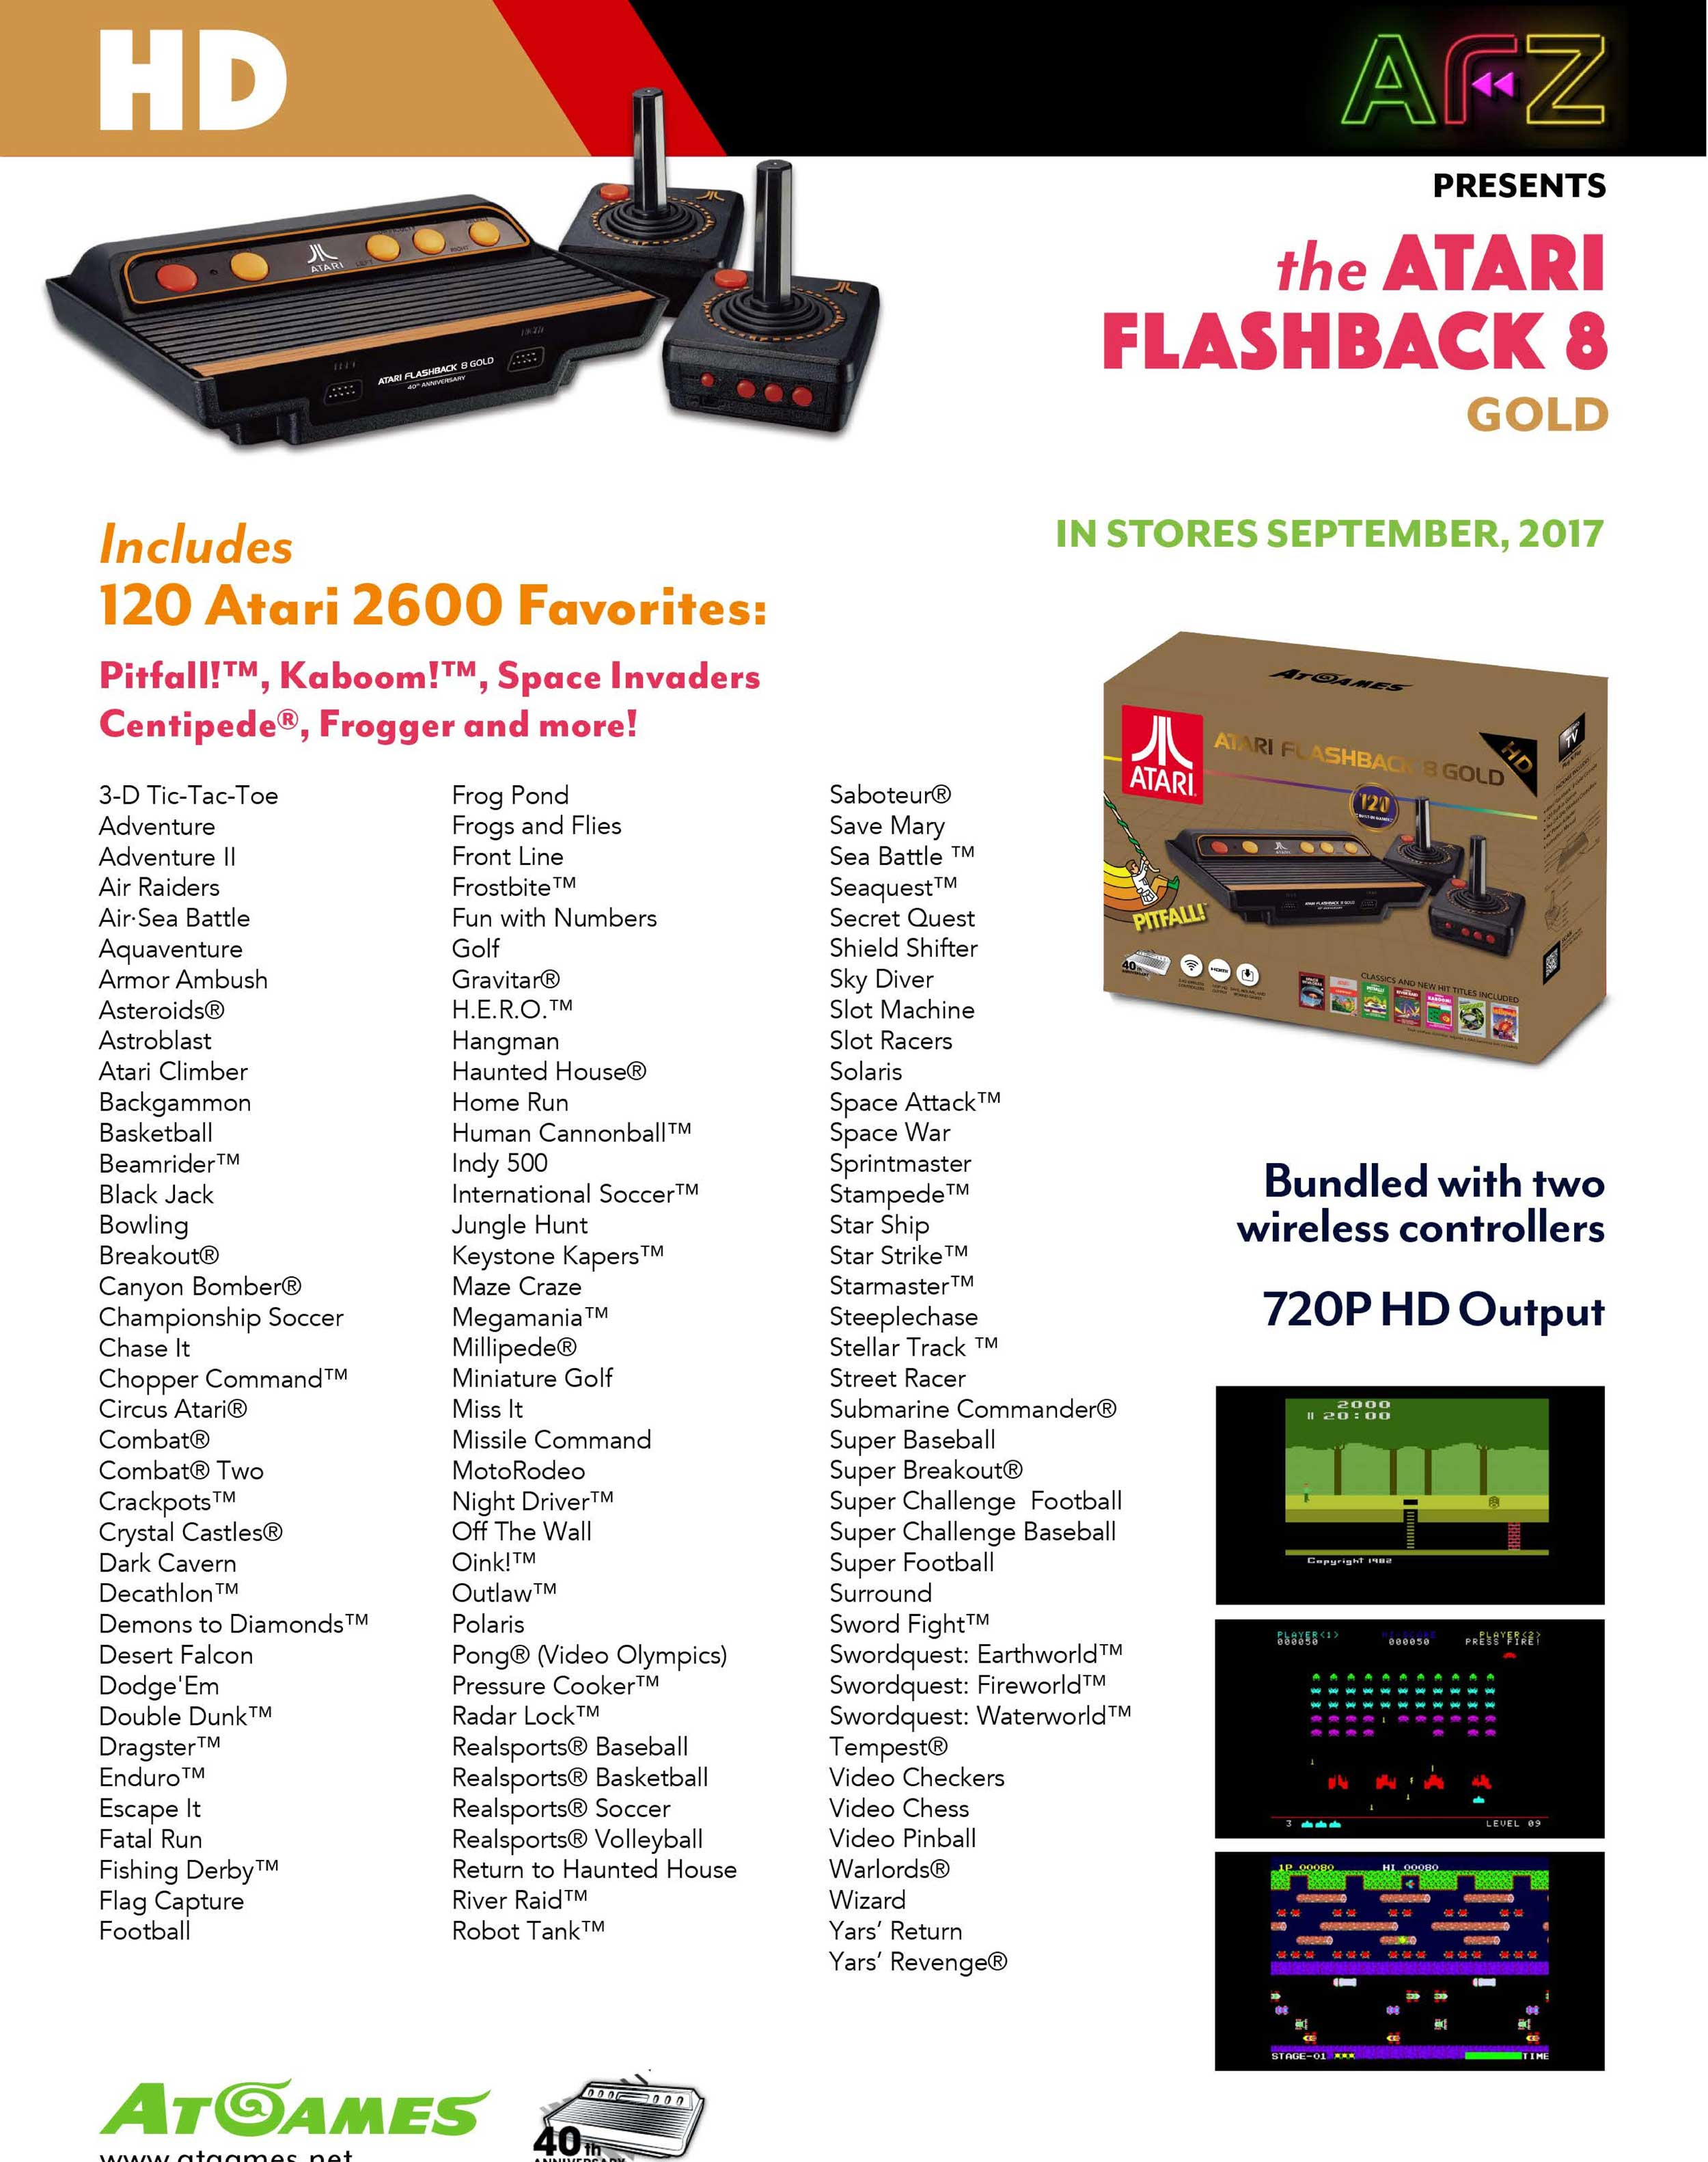 atari flashback 8 gold list of games